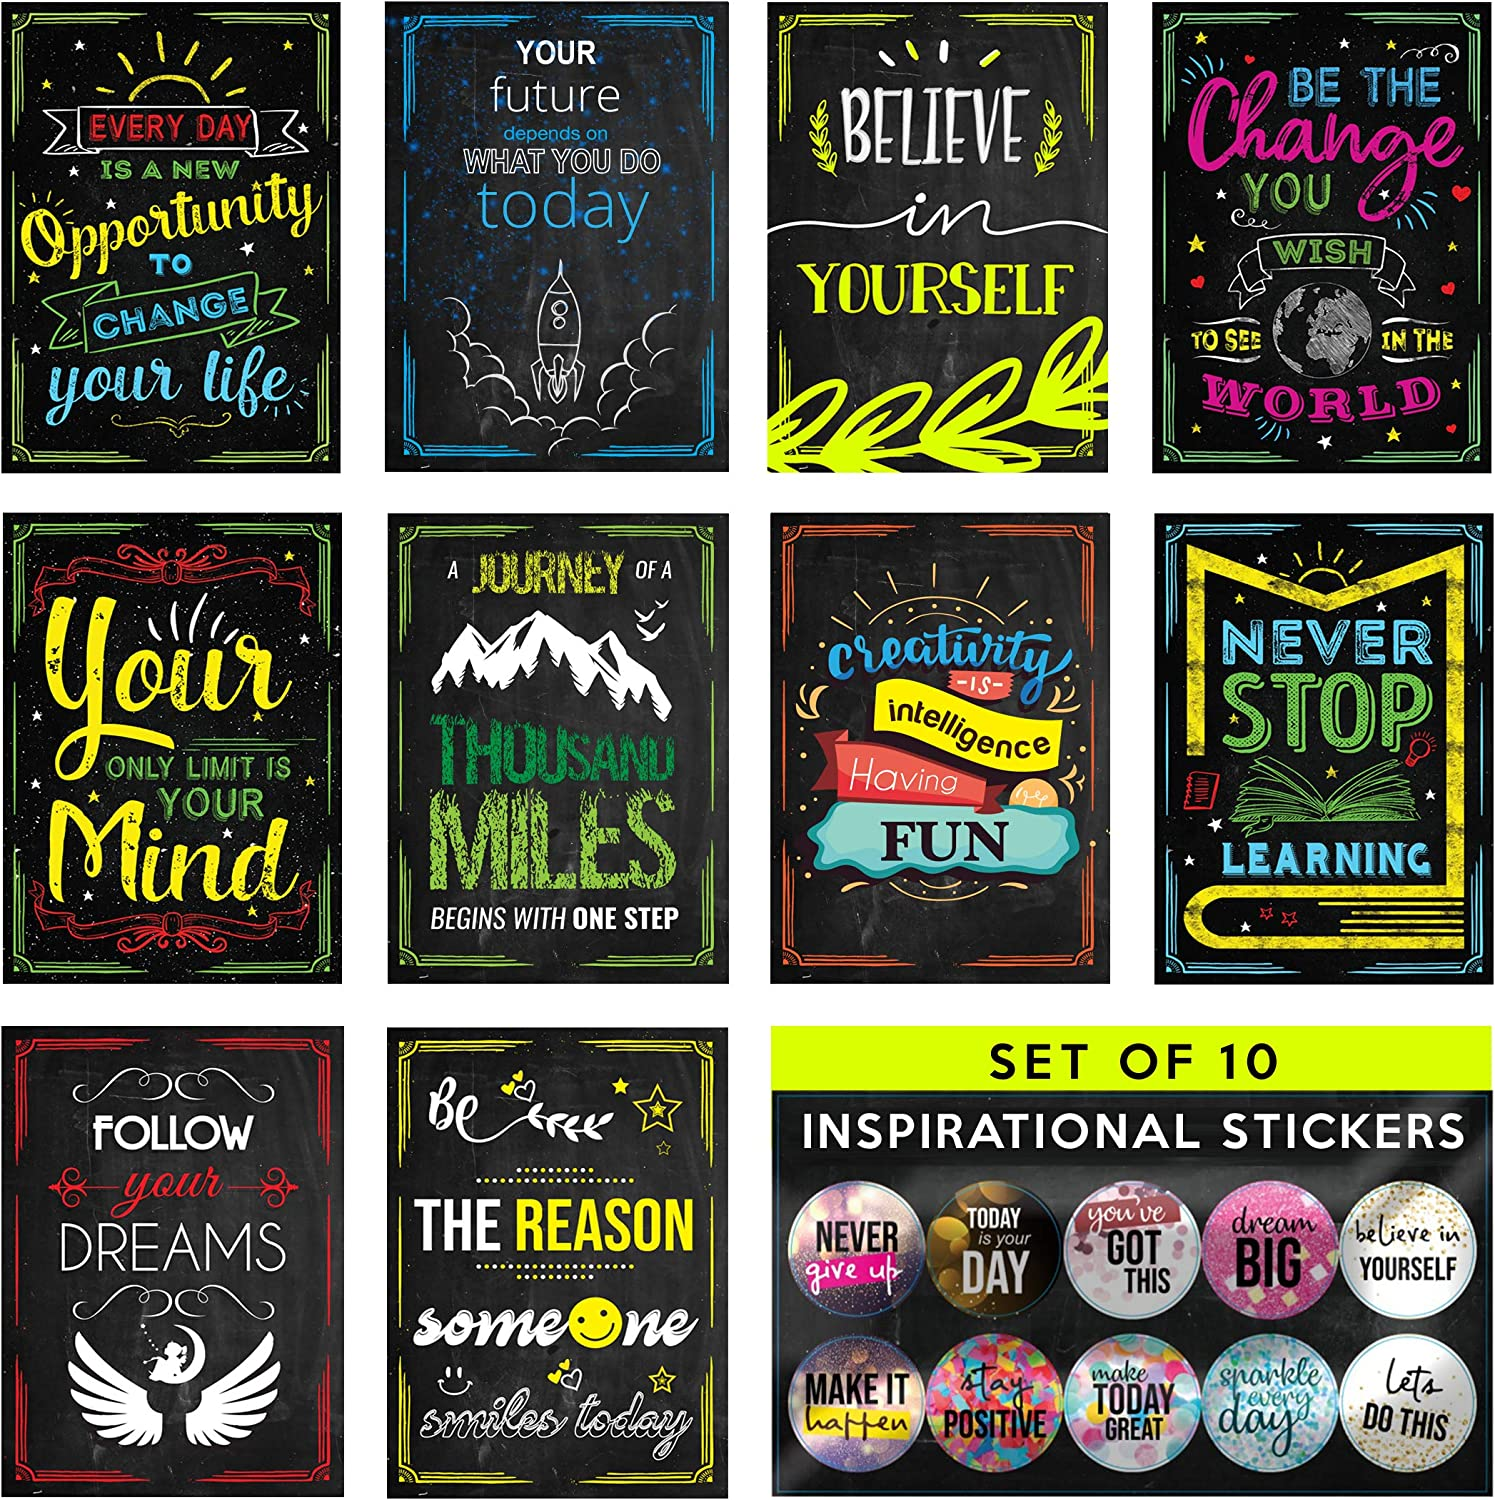 HappyPoster Inspirational Wall Art with Stickers! 10 Motivational Posters for Classroom Decorations, Home, Office Decor, College Dorm, Library Poster Set. School Supplies Positive Quotes Wall Decor